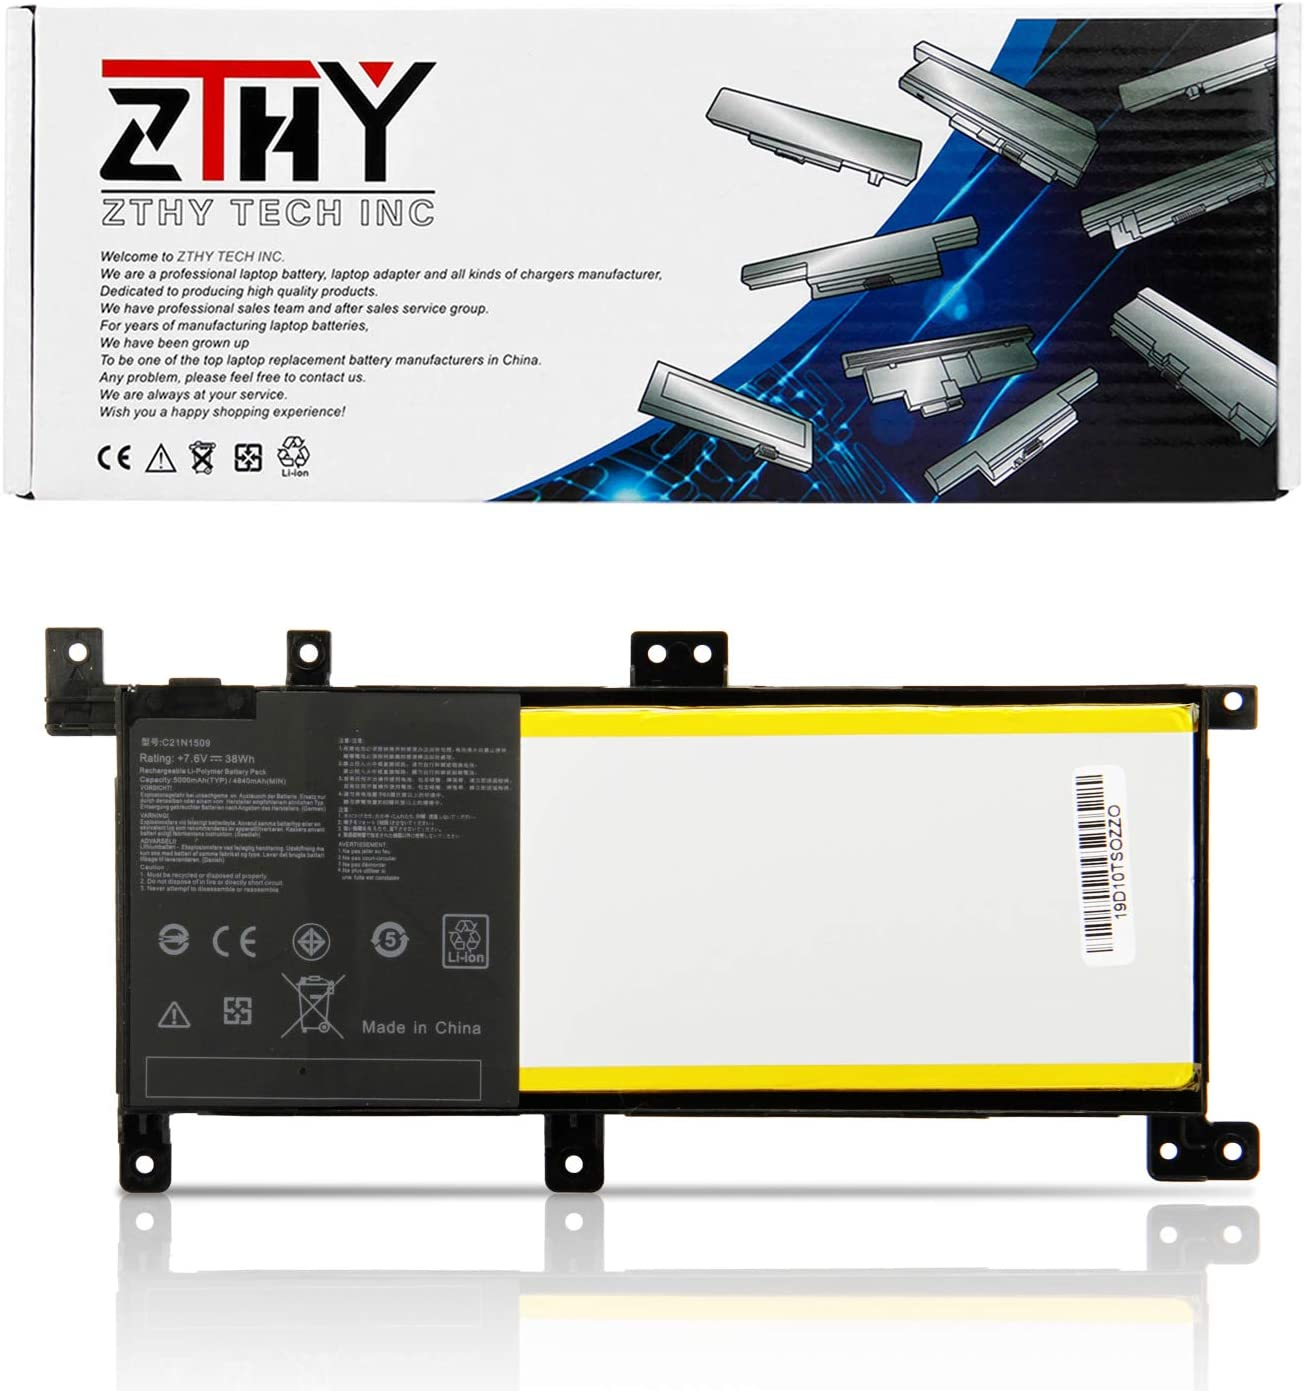 ZTHY 38Wh C21N1509 Laptop Battery Replacement for ASUS A556 A556U X556 X556UA X556UB X556UF X556UJ X556UQ X556UR X556UV K556 K556U Vivobook F556 F556U XO015T XO076T Series Notebook C21PQ9H 7.6V